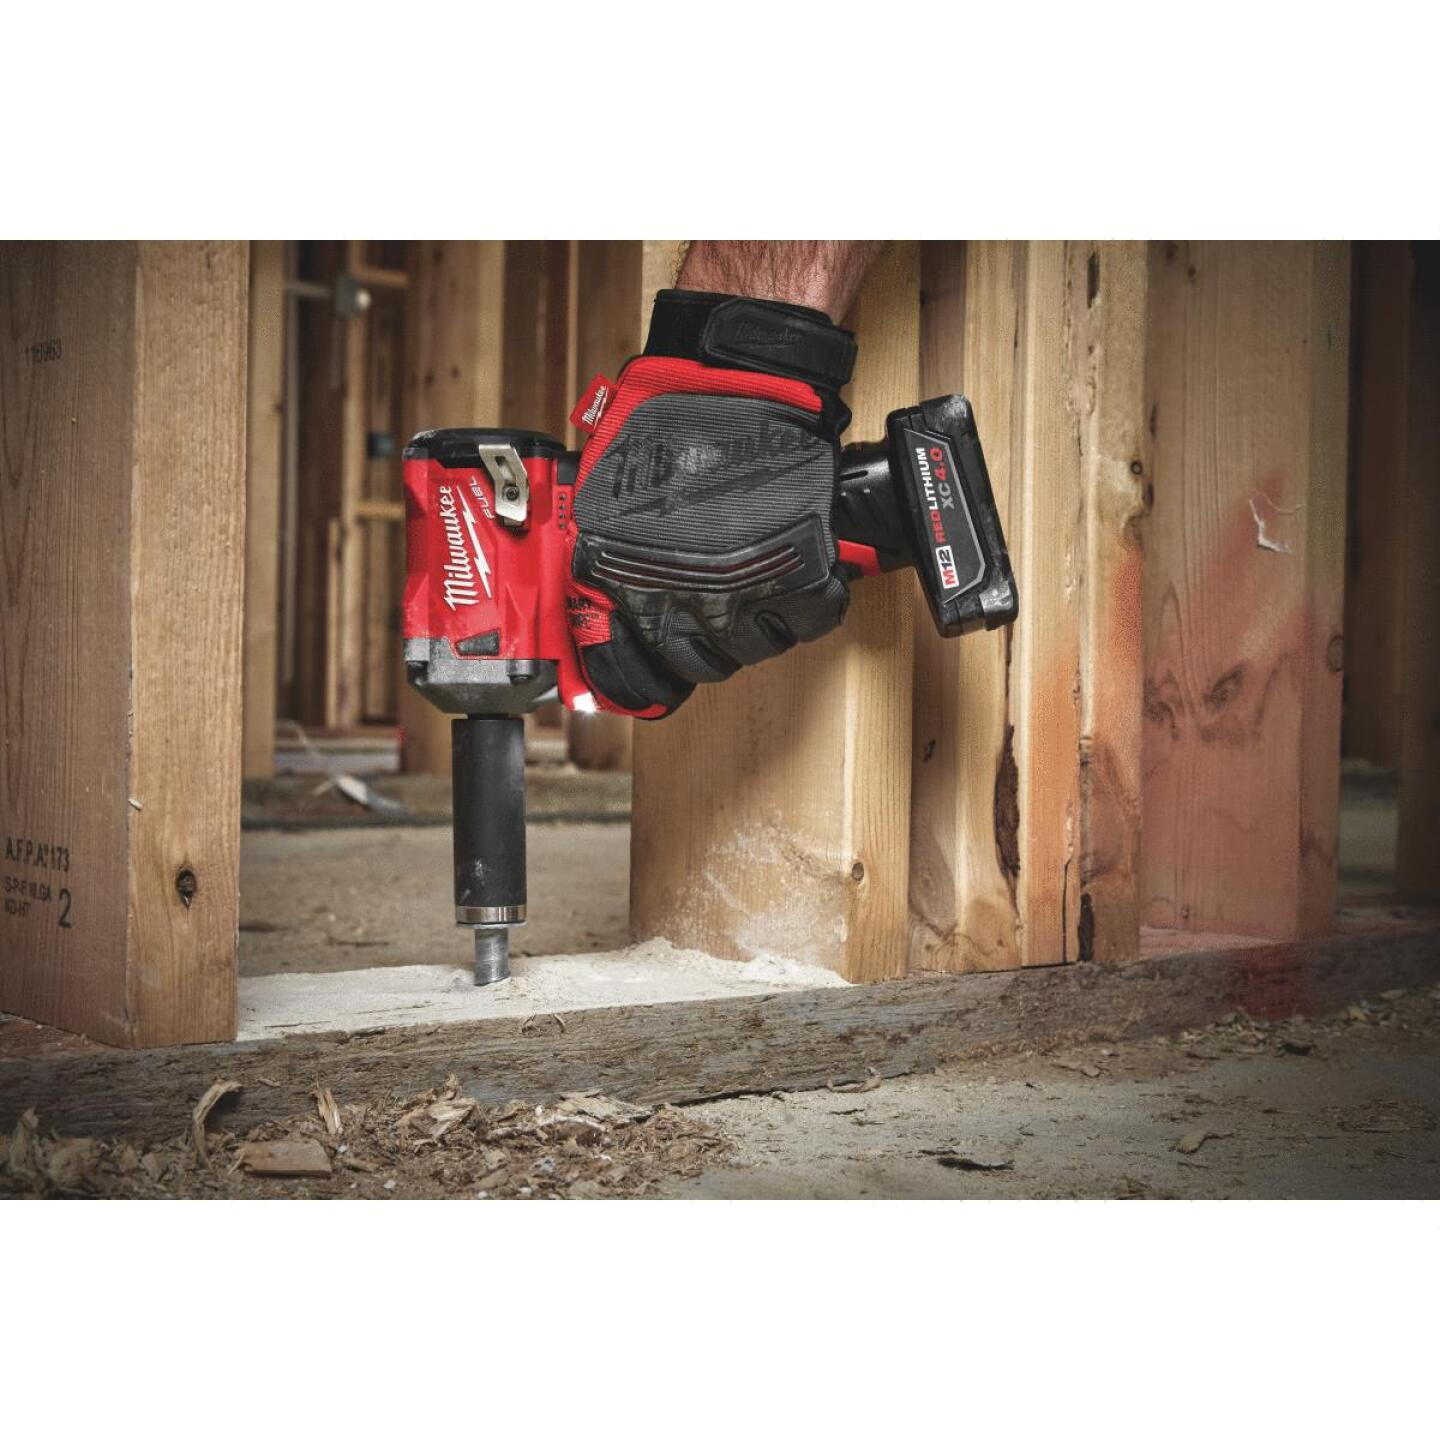 Milwaukee M12 FUEL 12 Volt Lithium-Ion Brushless 3/8 In. Stubby Cordless Impact Wrench Kit Image 3